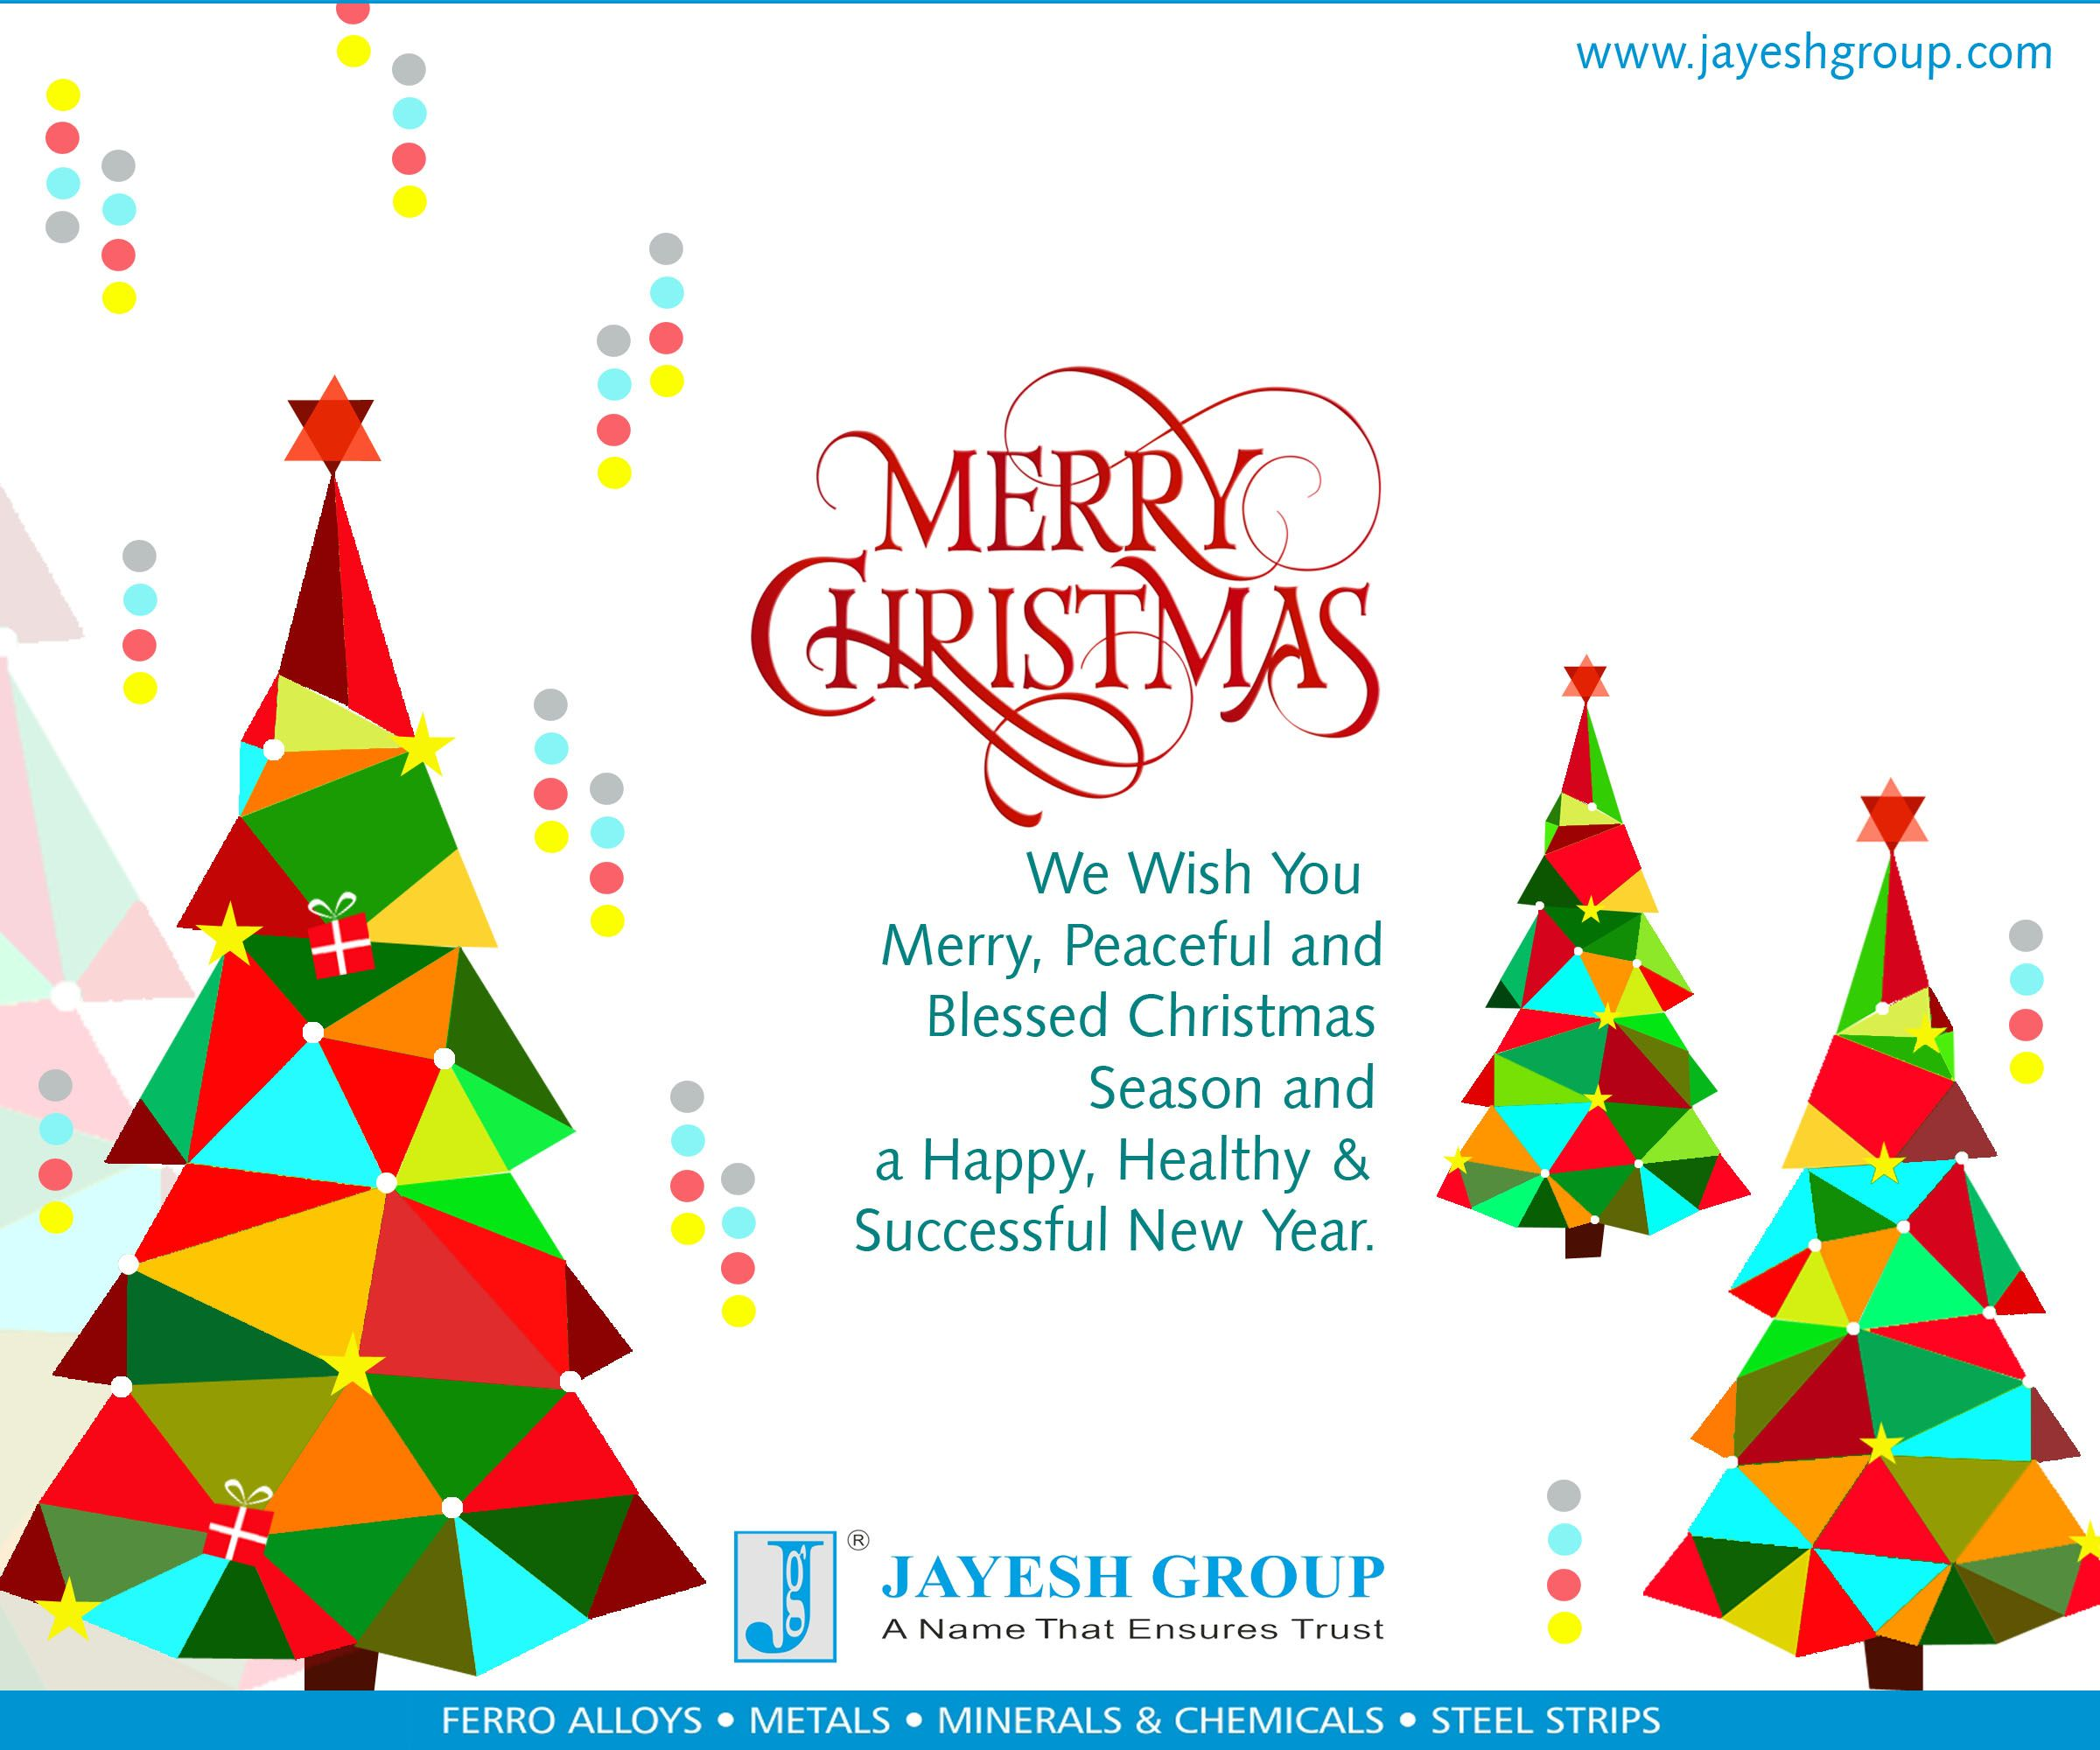 Merry Christmas We wish you Merry, Peaceful and Blessed Christmas ...